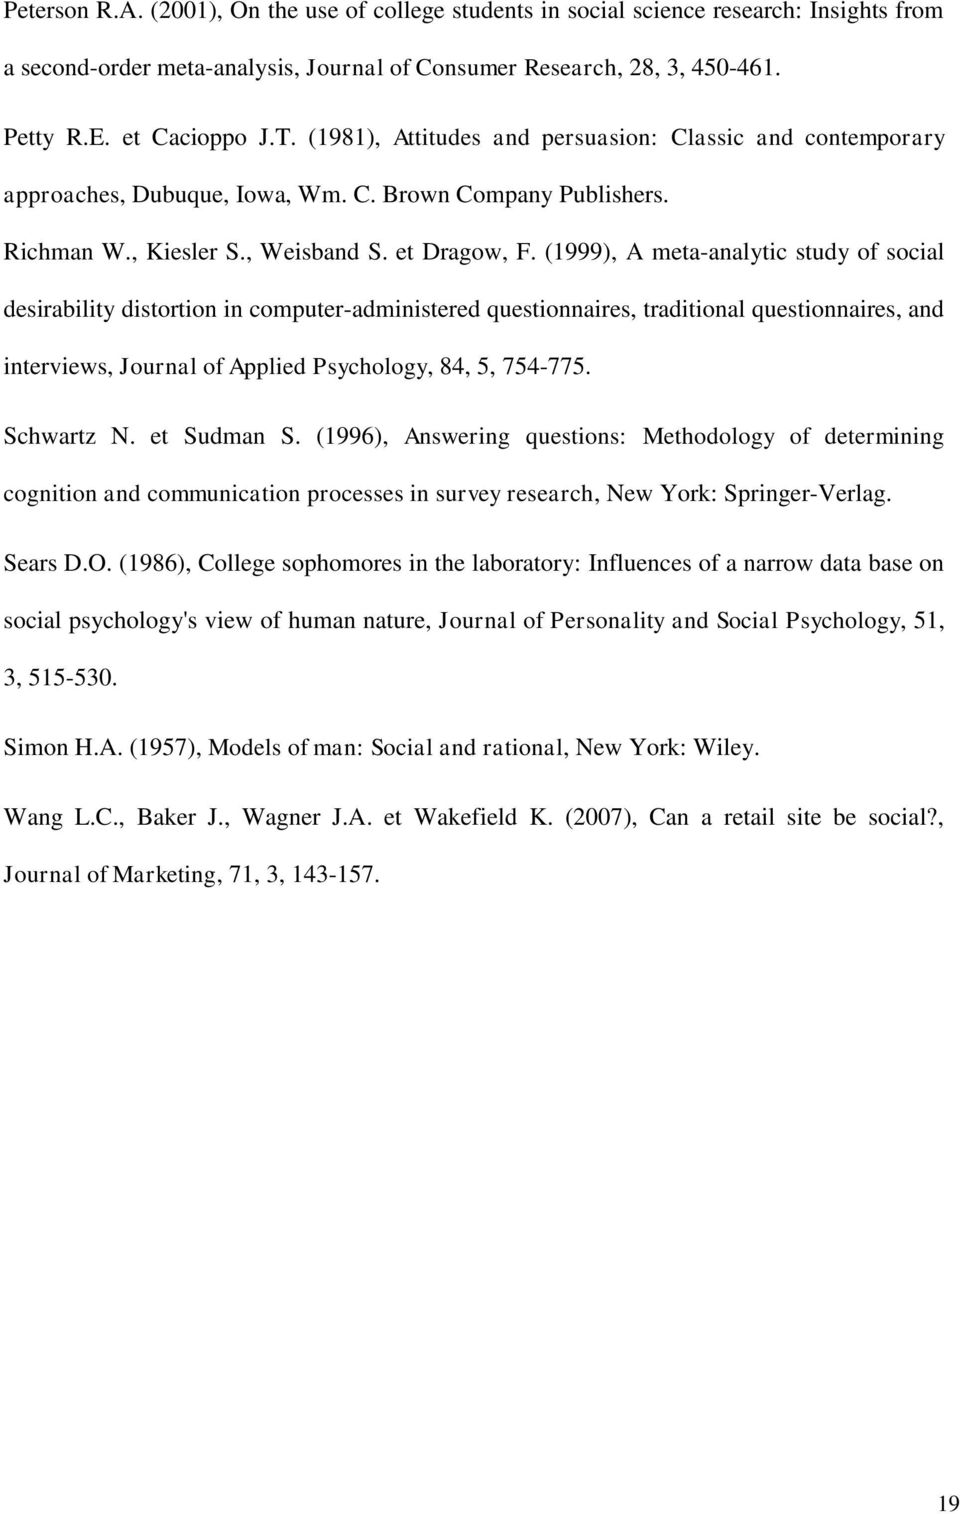 (1999), A meta-analytic study of social desirability distortion in computer-administered questionnaires, traditional questionnaires, and interviews, Journal of Applied Psychology, 84, 5, 754-775.